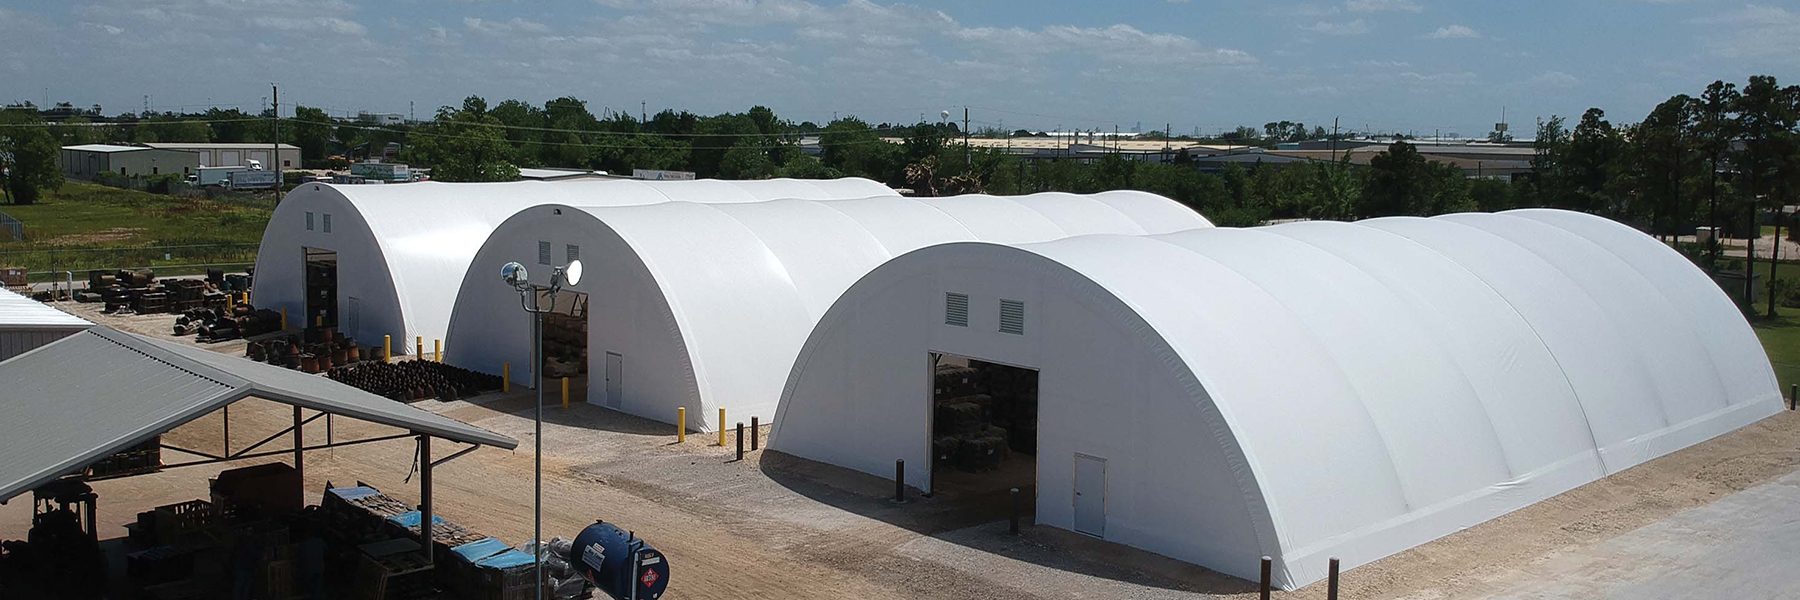 Industrial Storage using three fabric structure